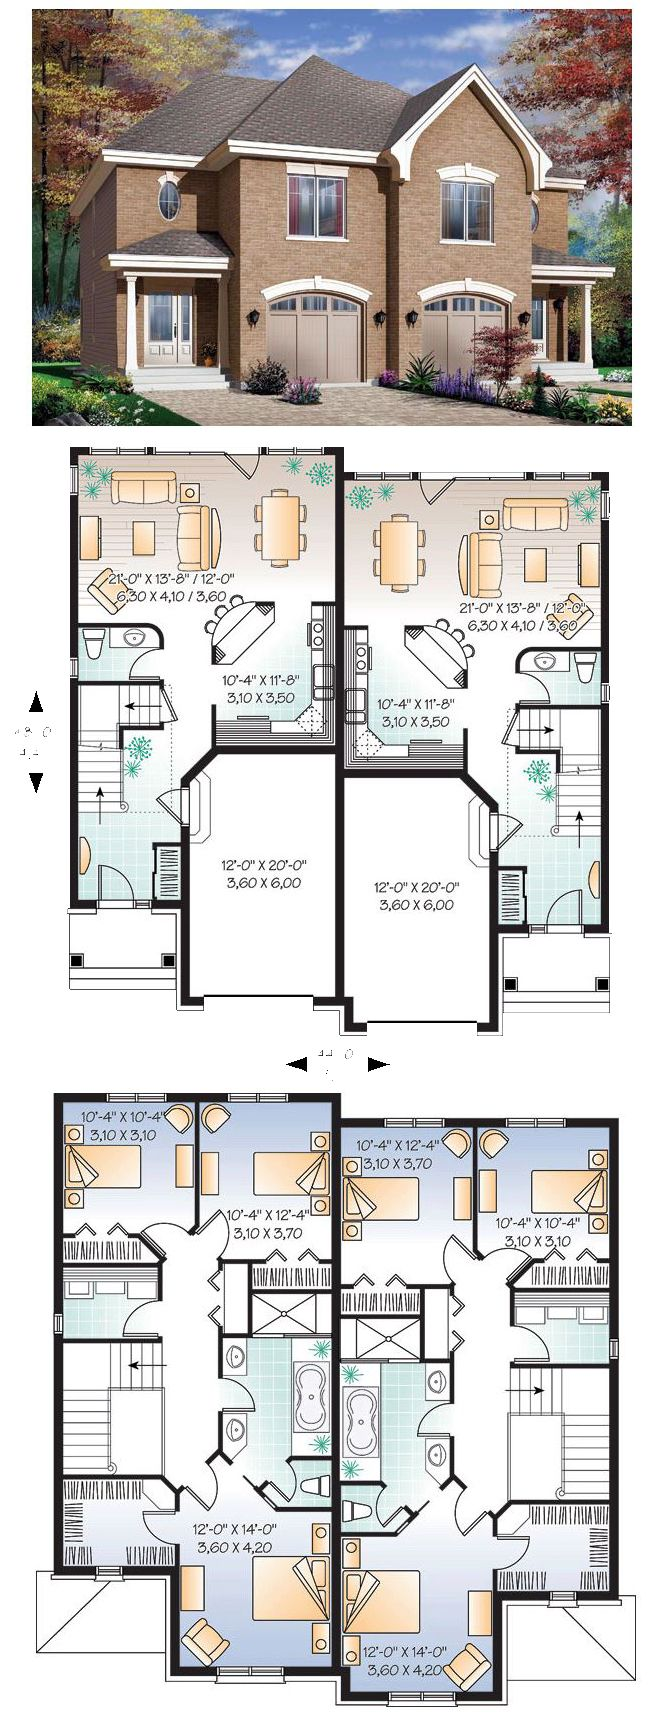 #MultiFamily Plan 65339 has plenty of room for two families at 3188 total sq. ft. Each unit has three bedrooms and 1.5 bathrooms.